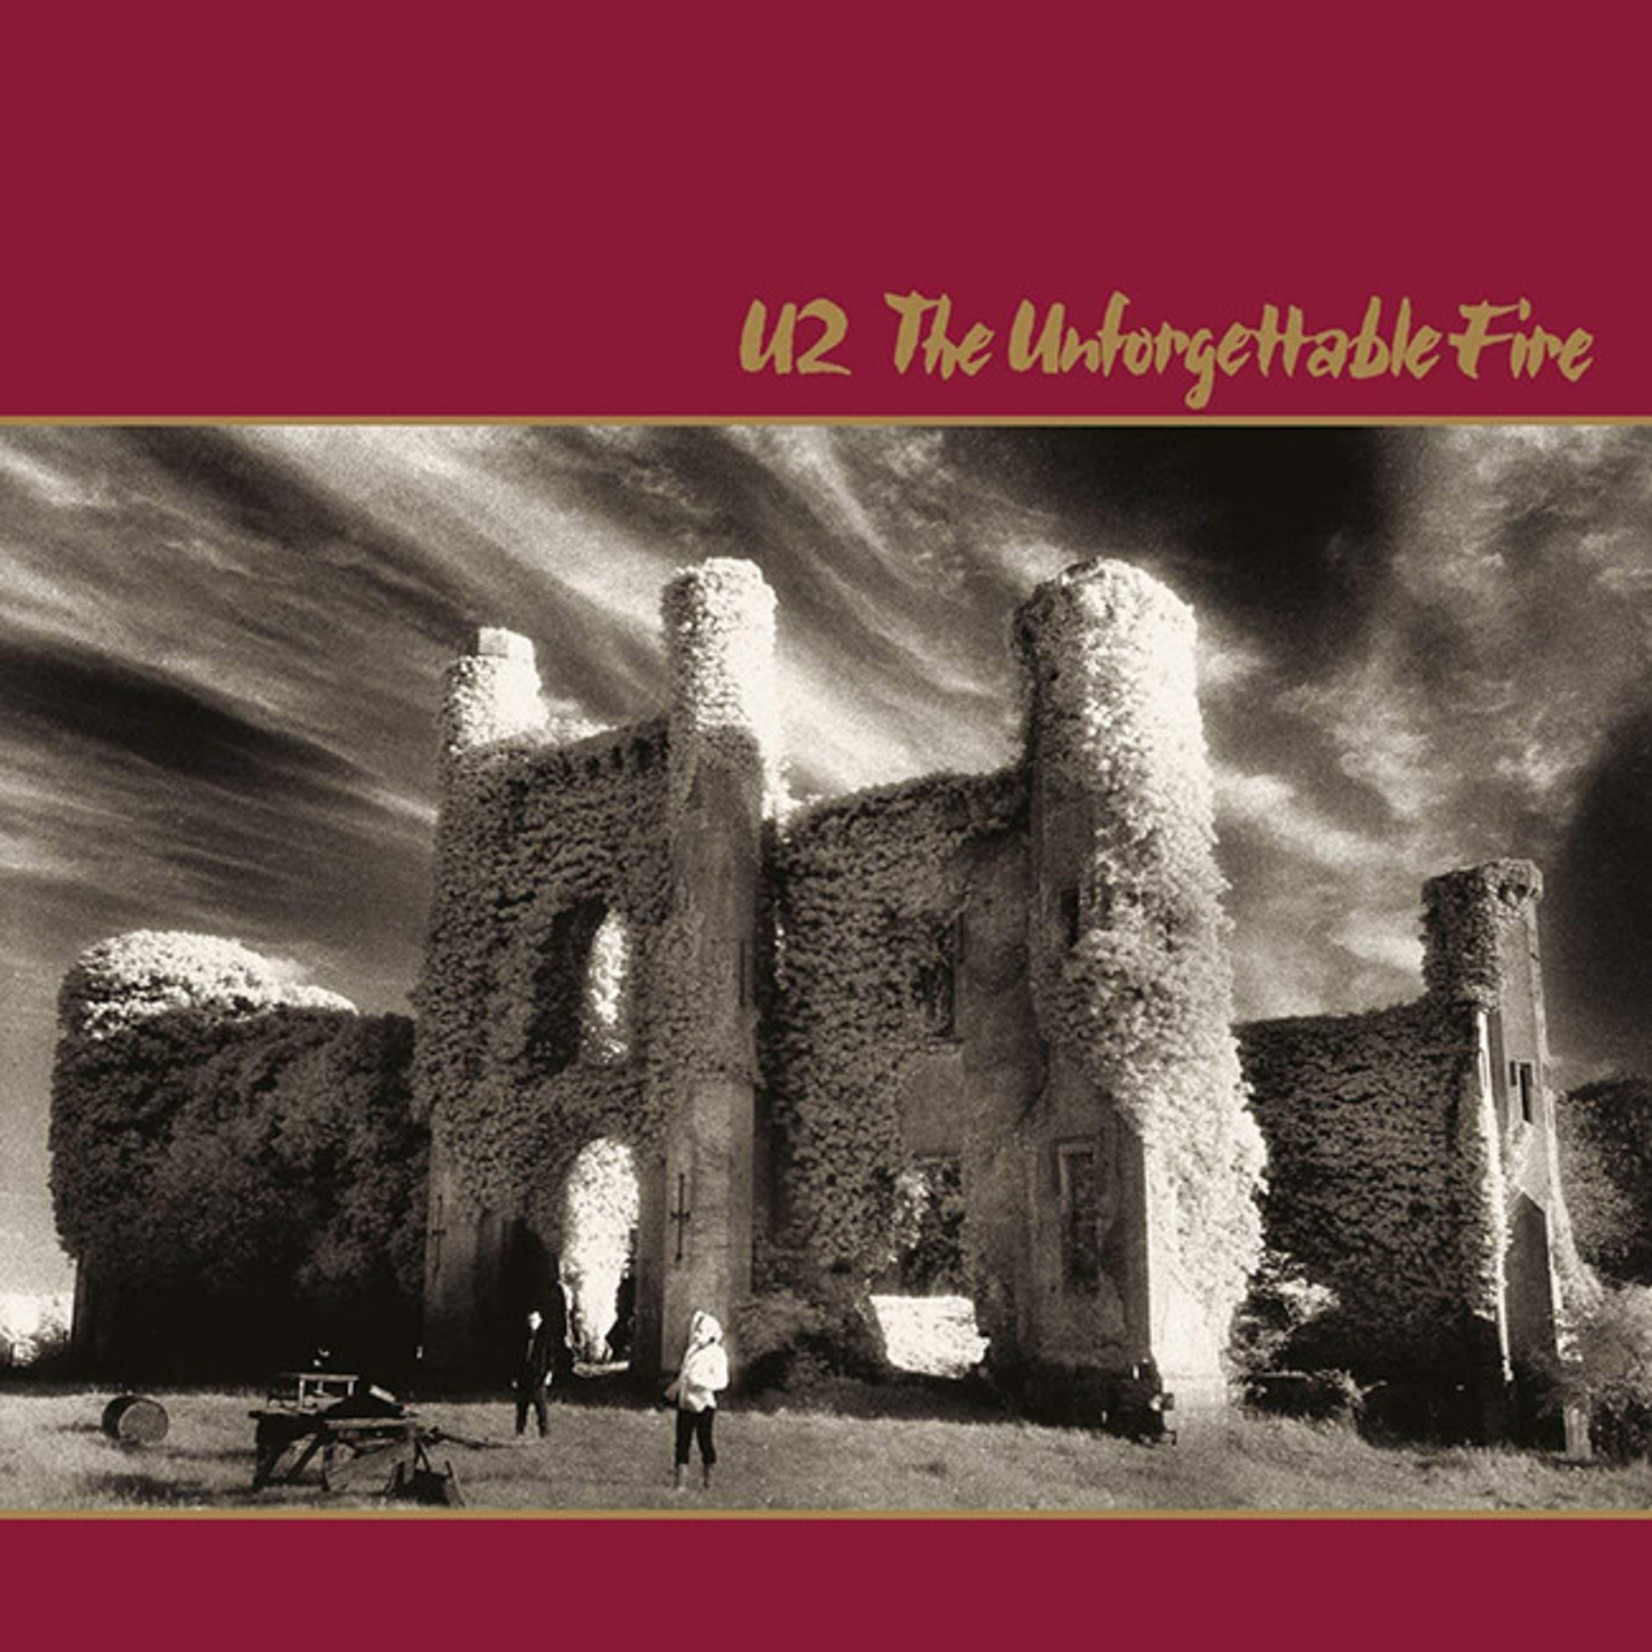 [New] U2: The Unforgettable Fire